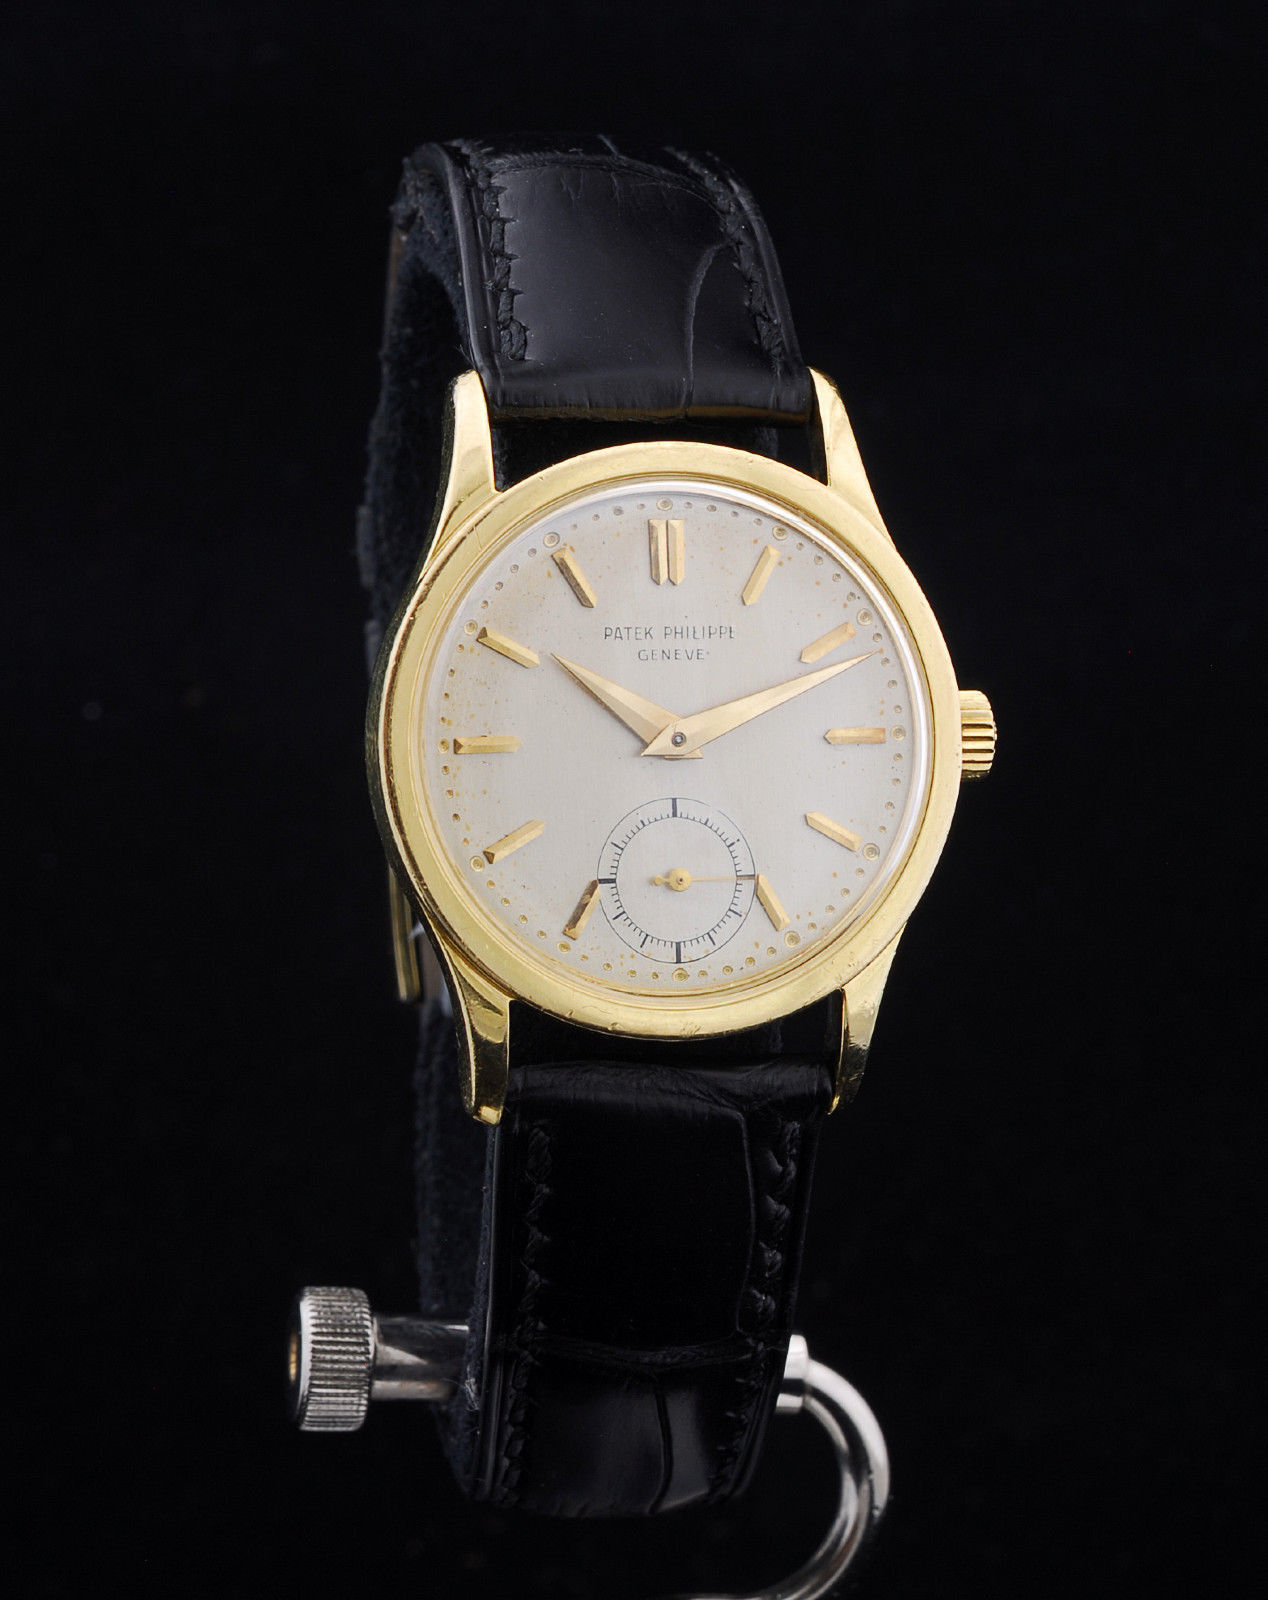 Wrist watches brands for mens - Pioneered By Polish And Swiss Watchmakers This Is The Brand For Men Coveting Ultra Prestige Label And Highly Complicated Mechanical Features Such As